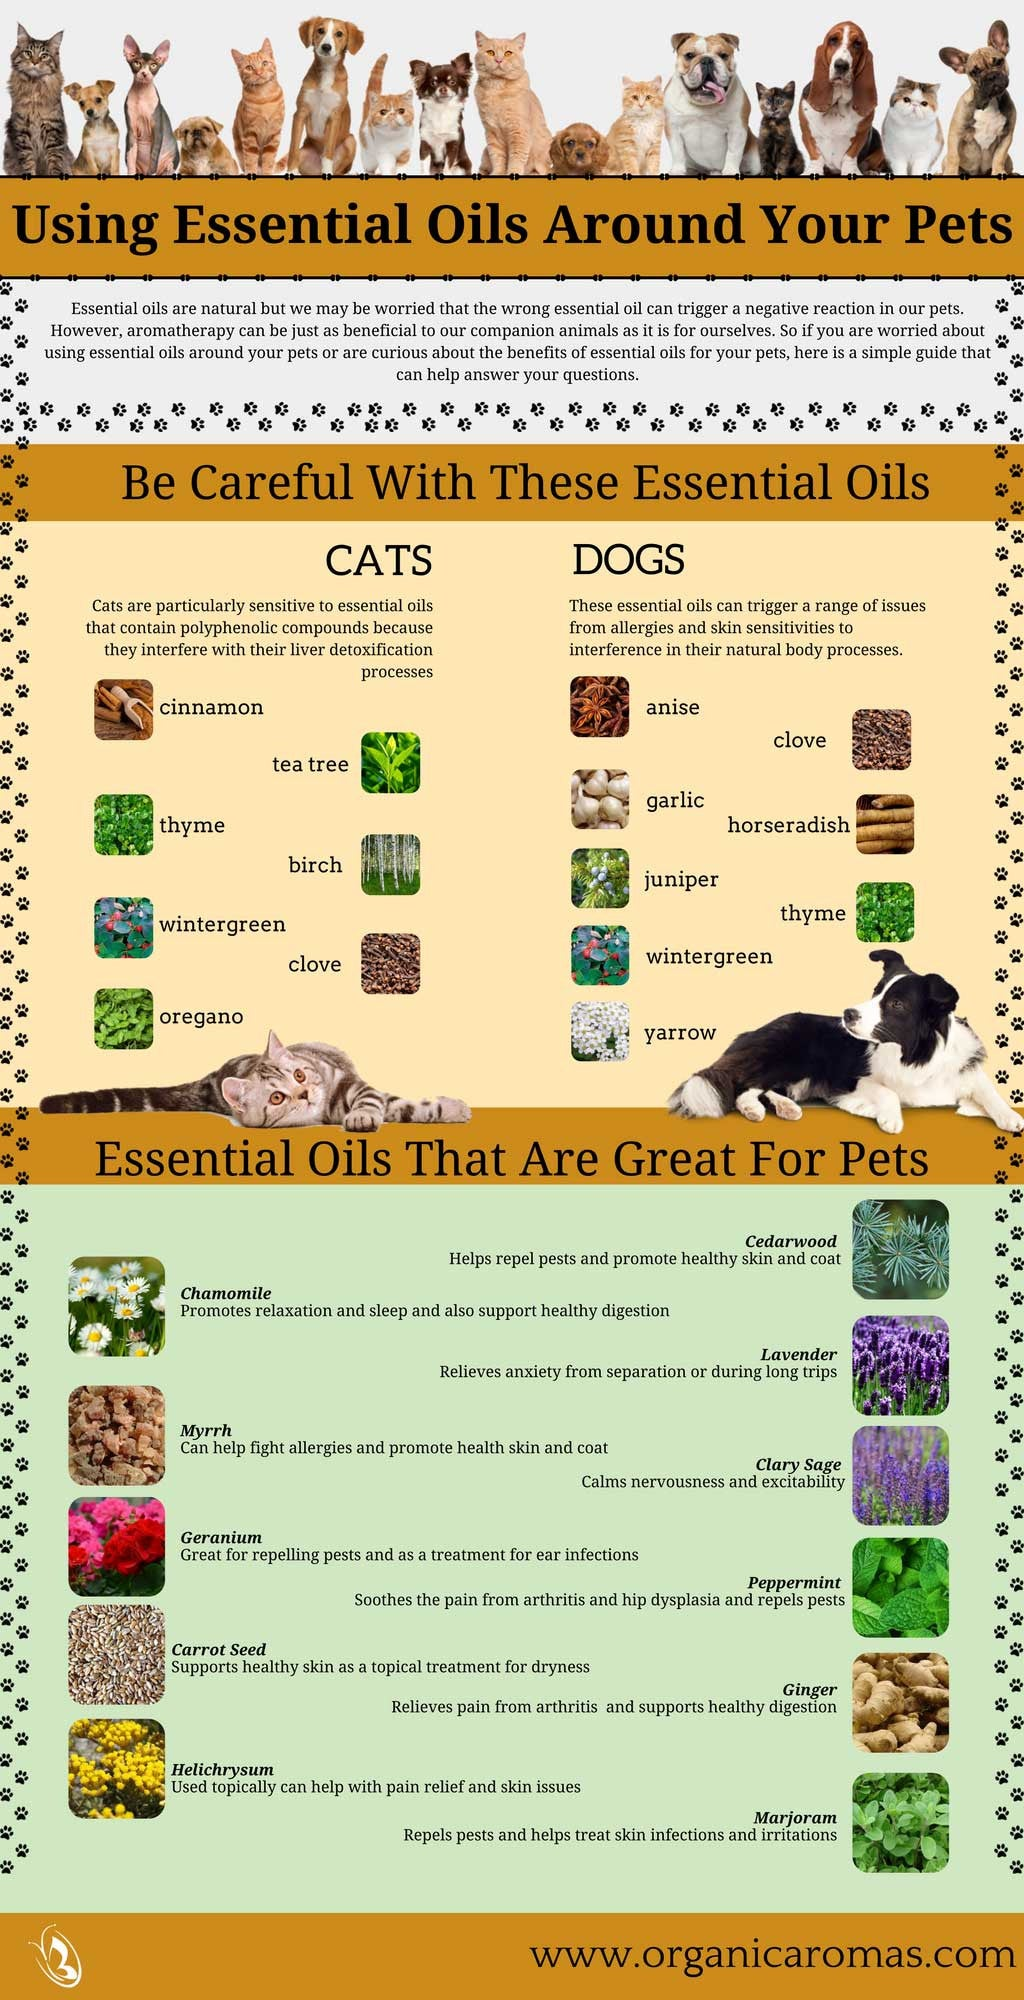 Using Essential Oils Around Pets Info-graphic